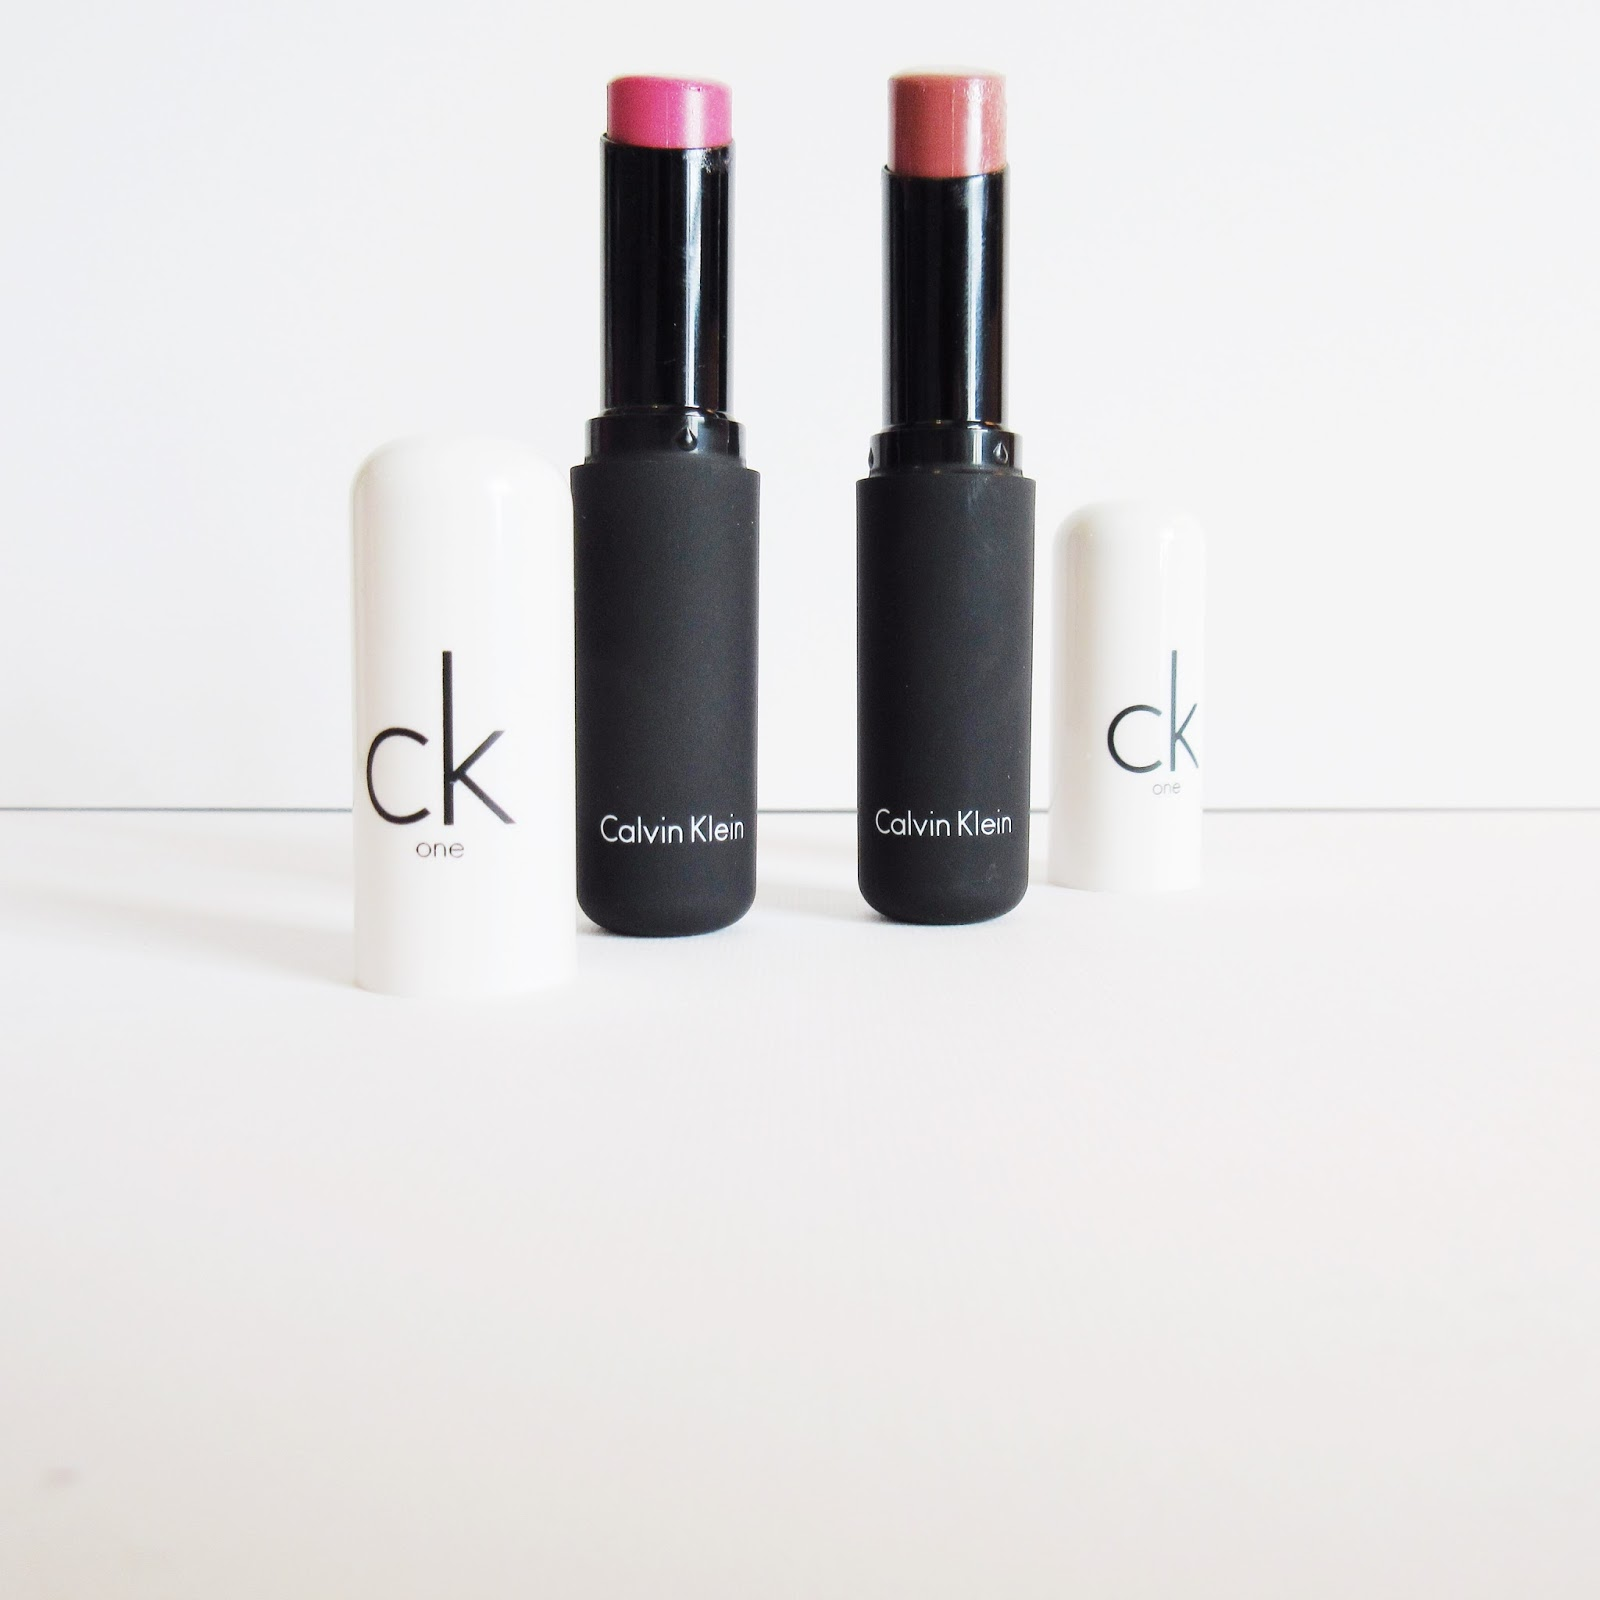 CK One Color Shine Lipstick Review